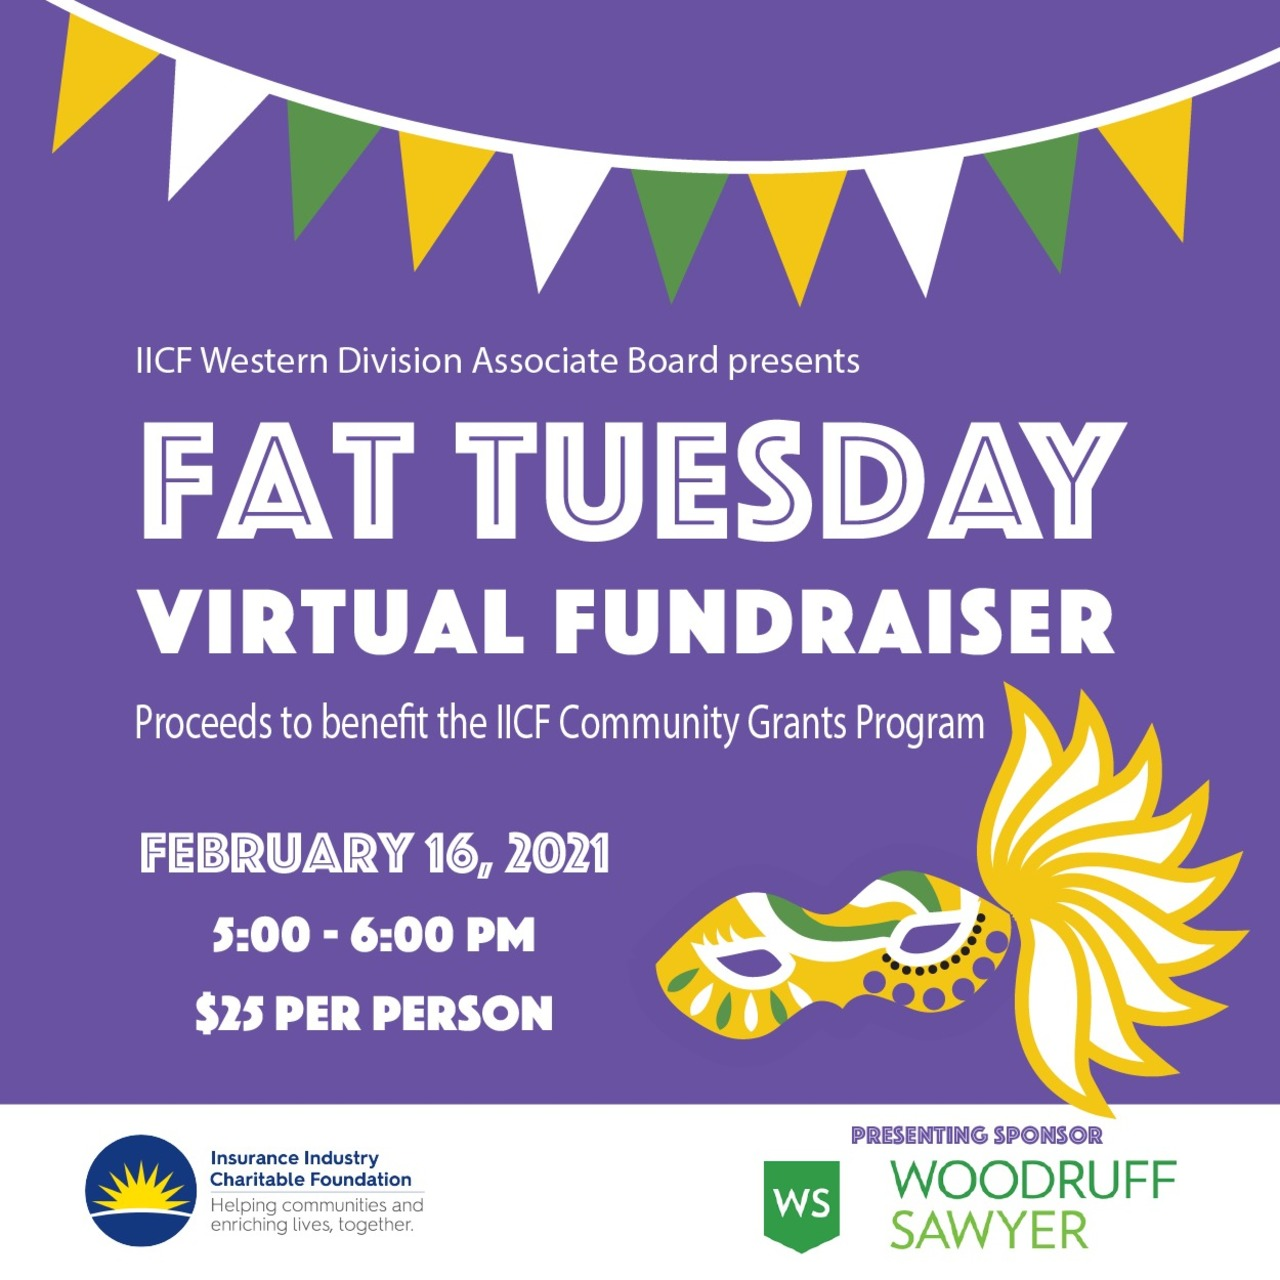 IICF Fat Tuesday Virtual Fundraiser